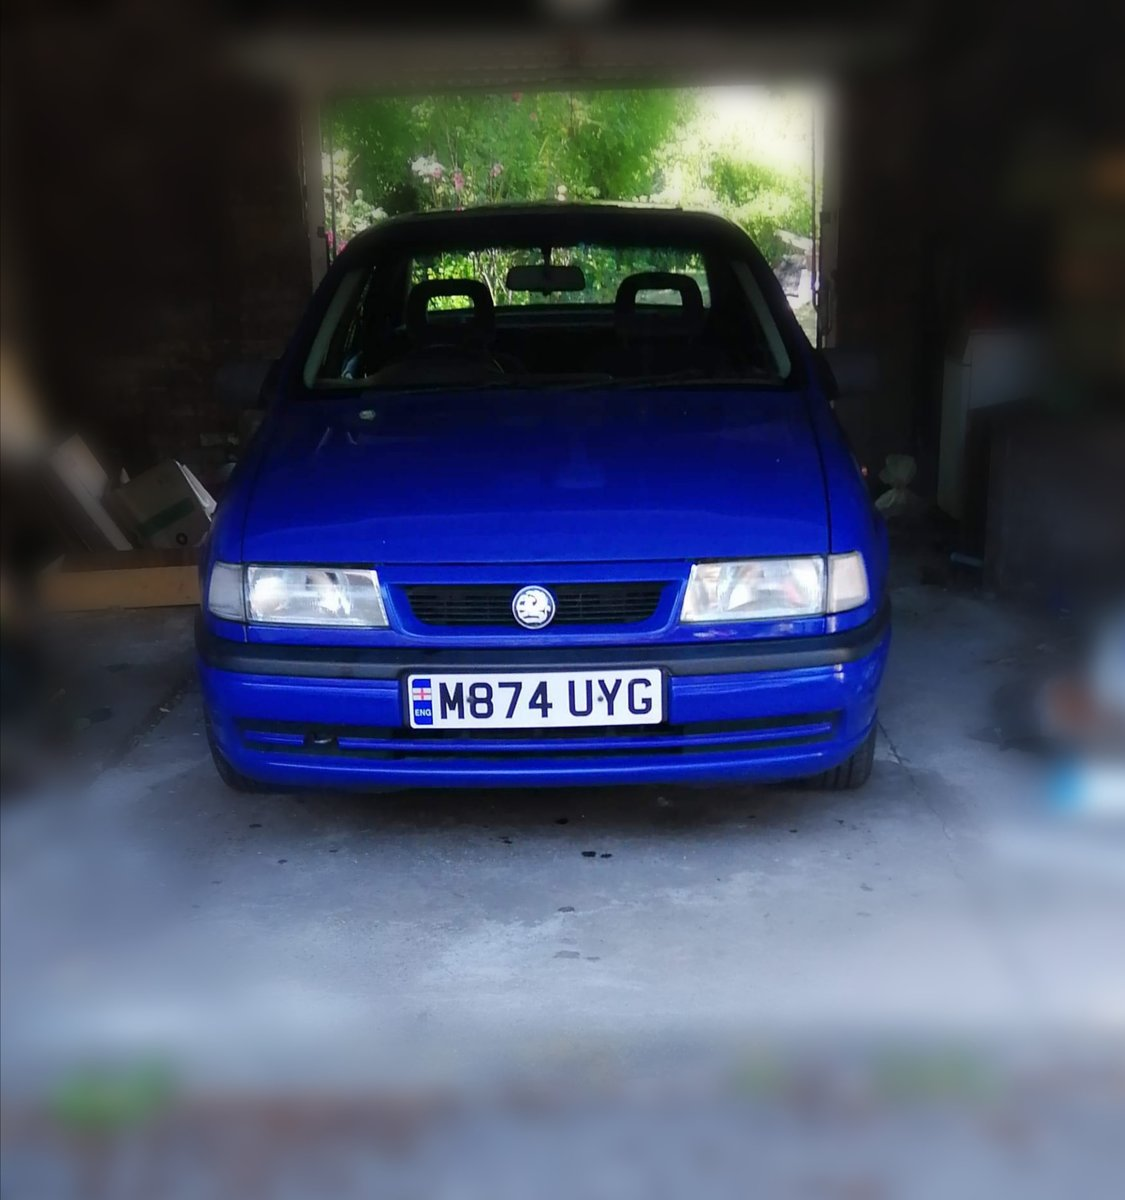 1994 Vauxhall cavalier 1.7 td ** restoration project * For Sale (picture 1 of 6)